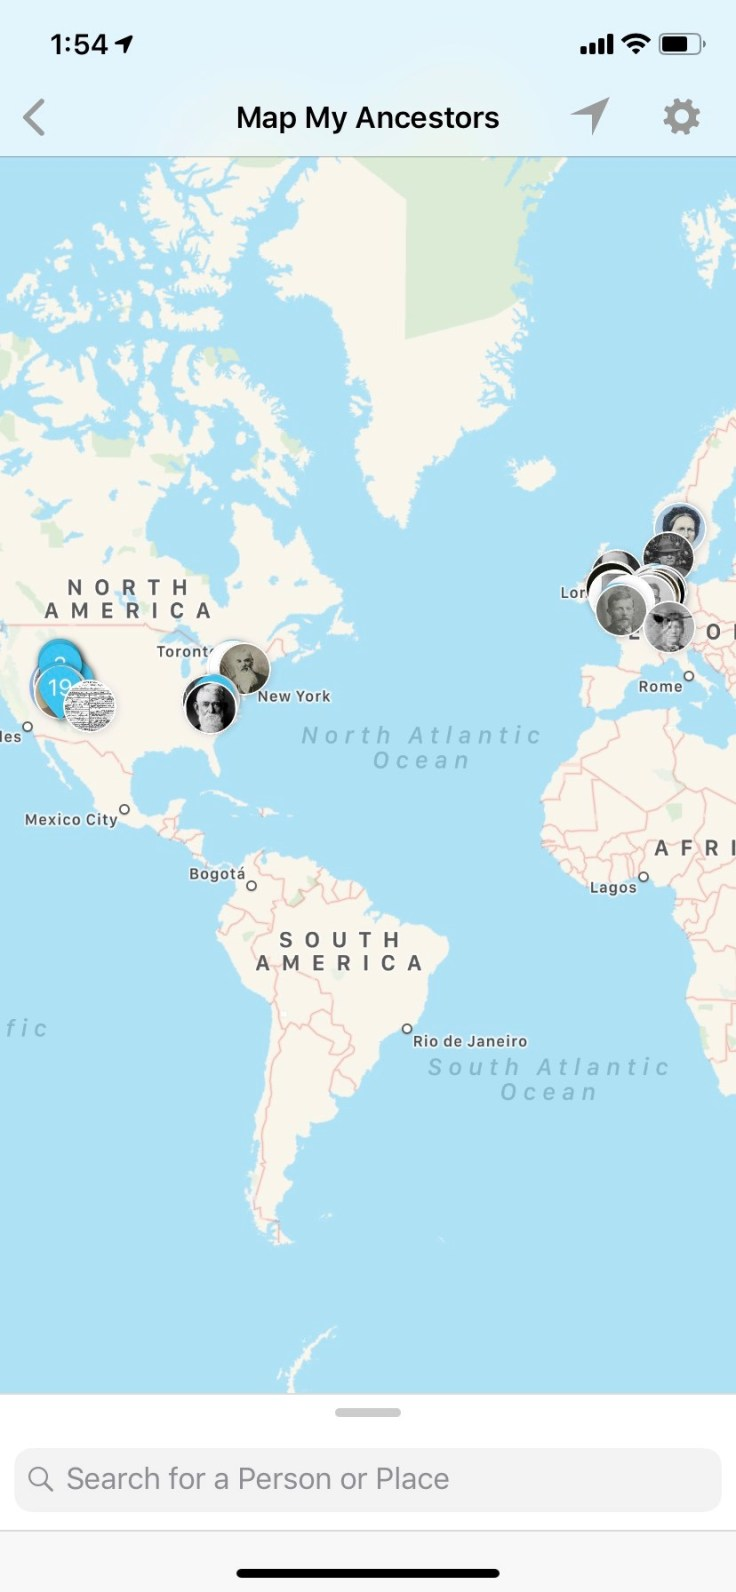 ancestors on the world map in ios